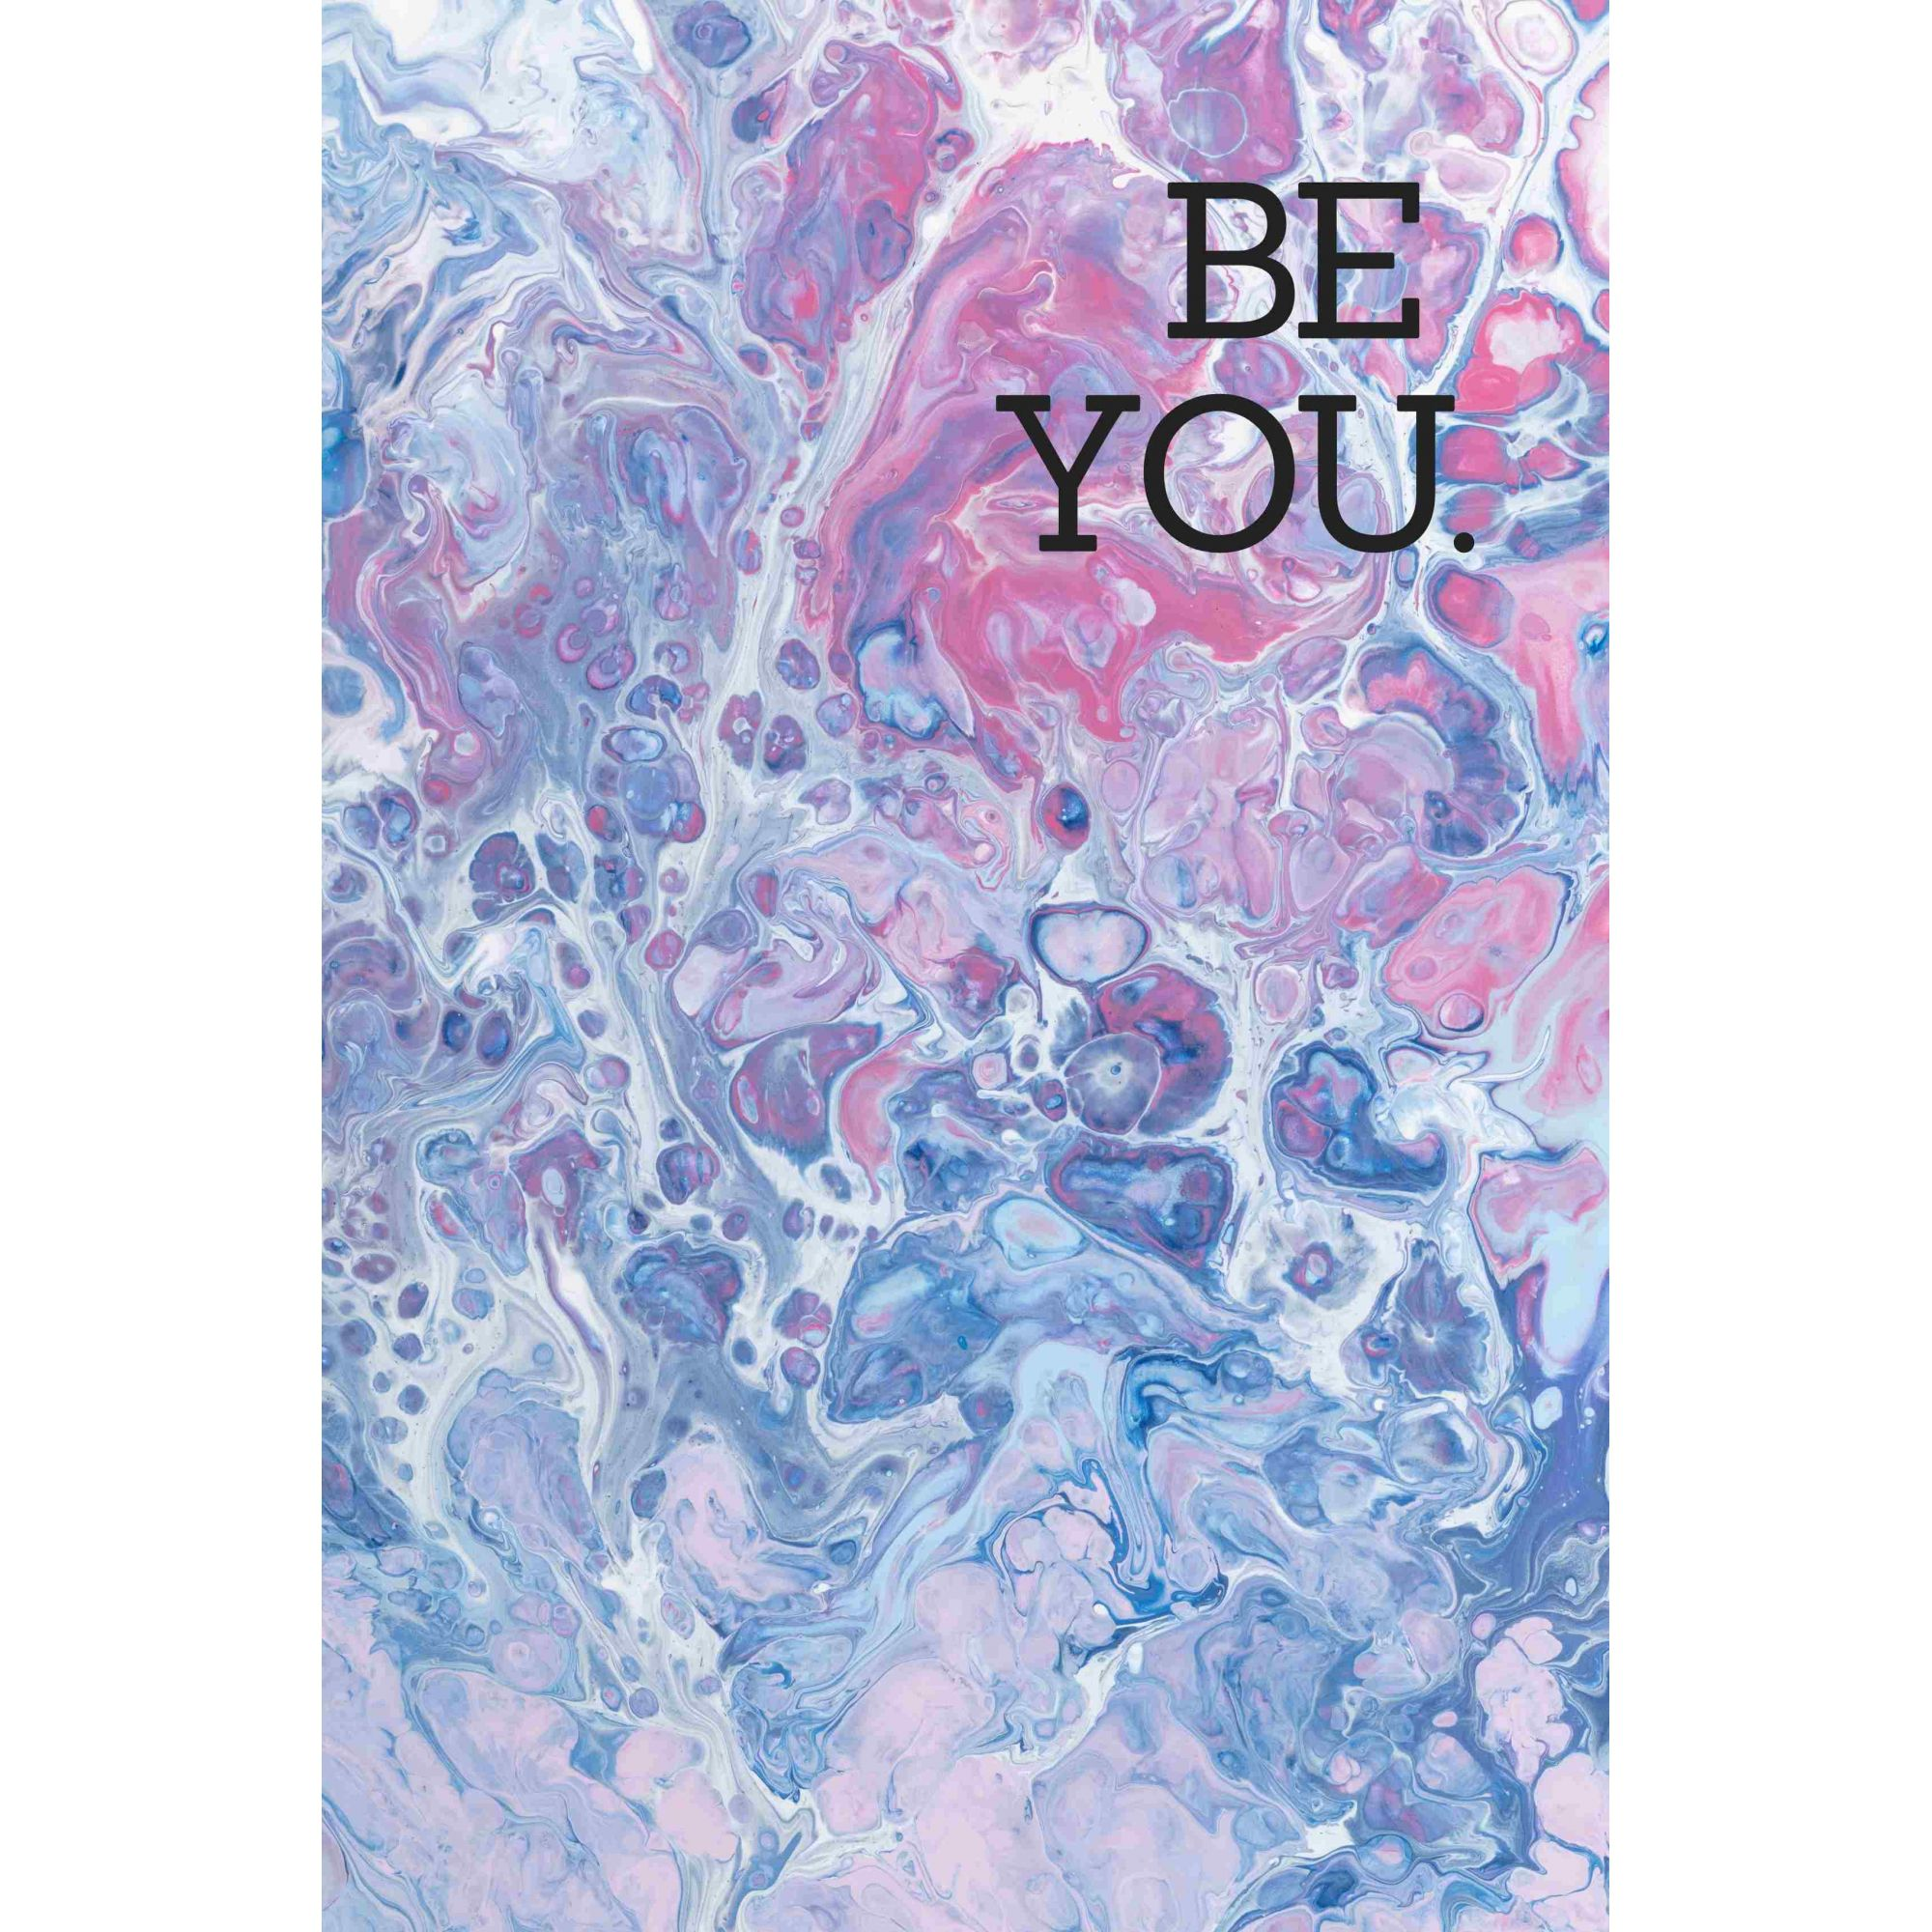 Quadro Decorativo em Canvas BE YOU